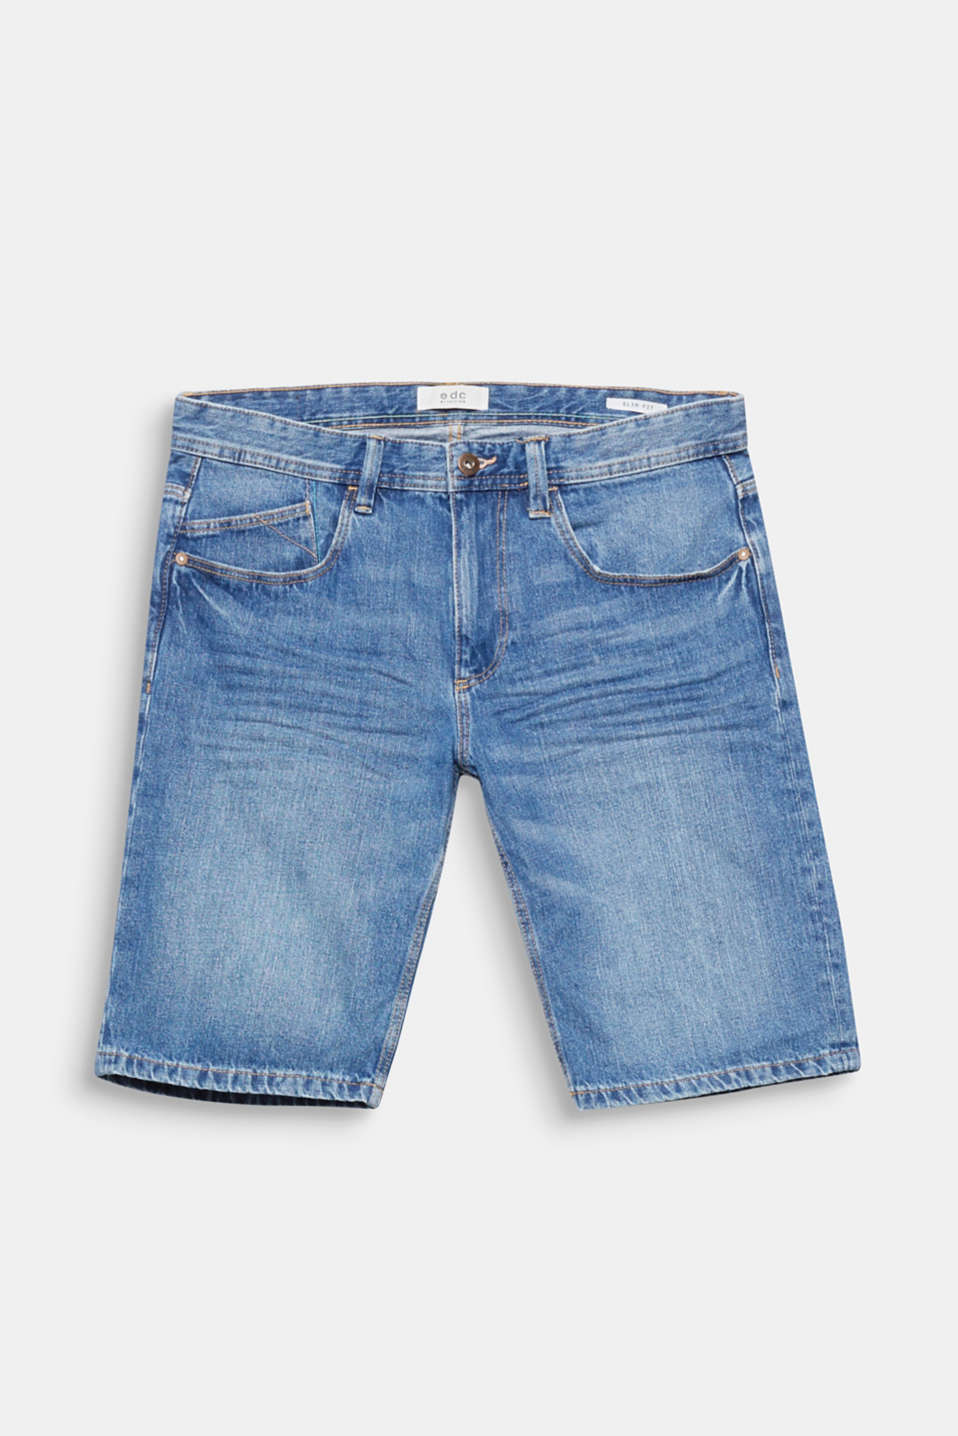 We love Denim! Klassischer Denim mit modernen Washed-Out-Effekten - dein daily Essential für den Sommer.